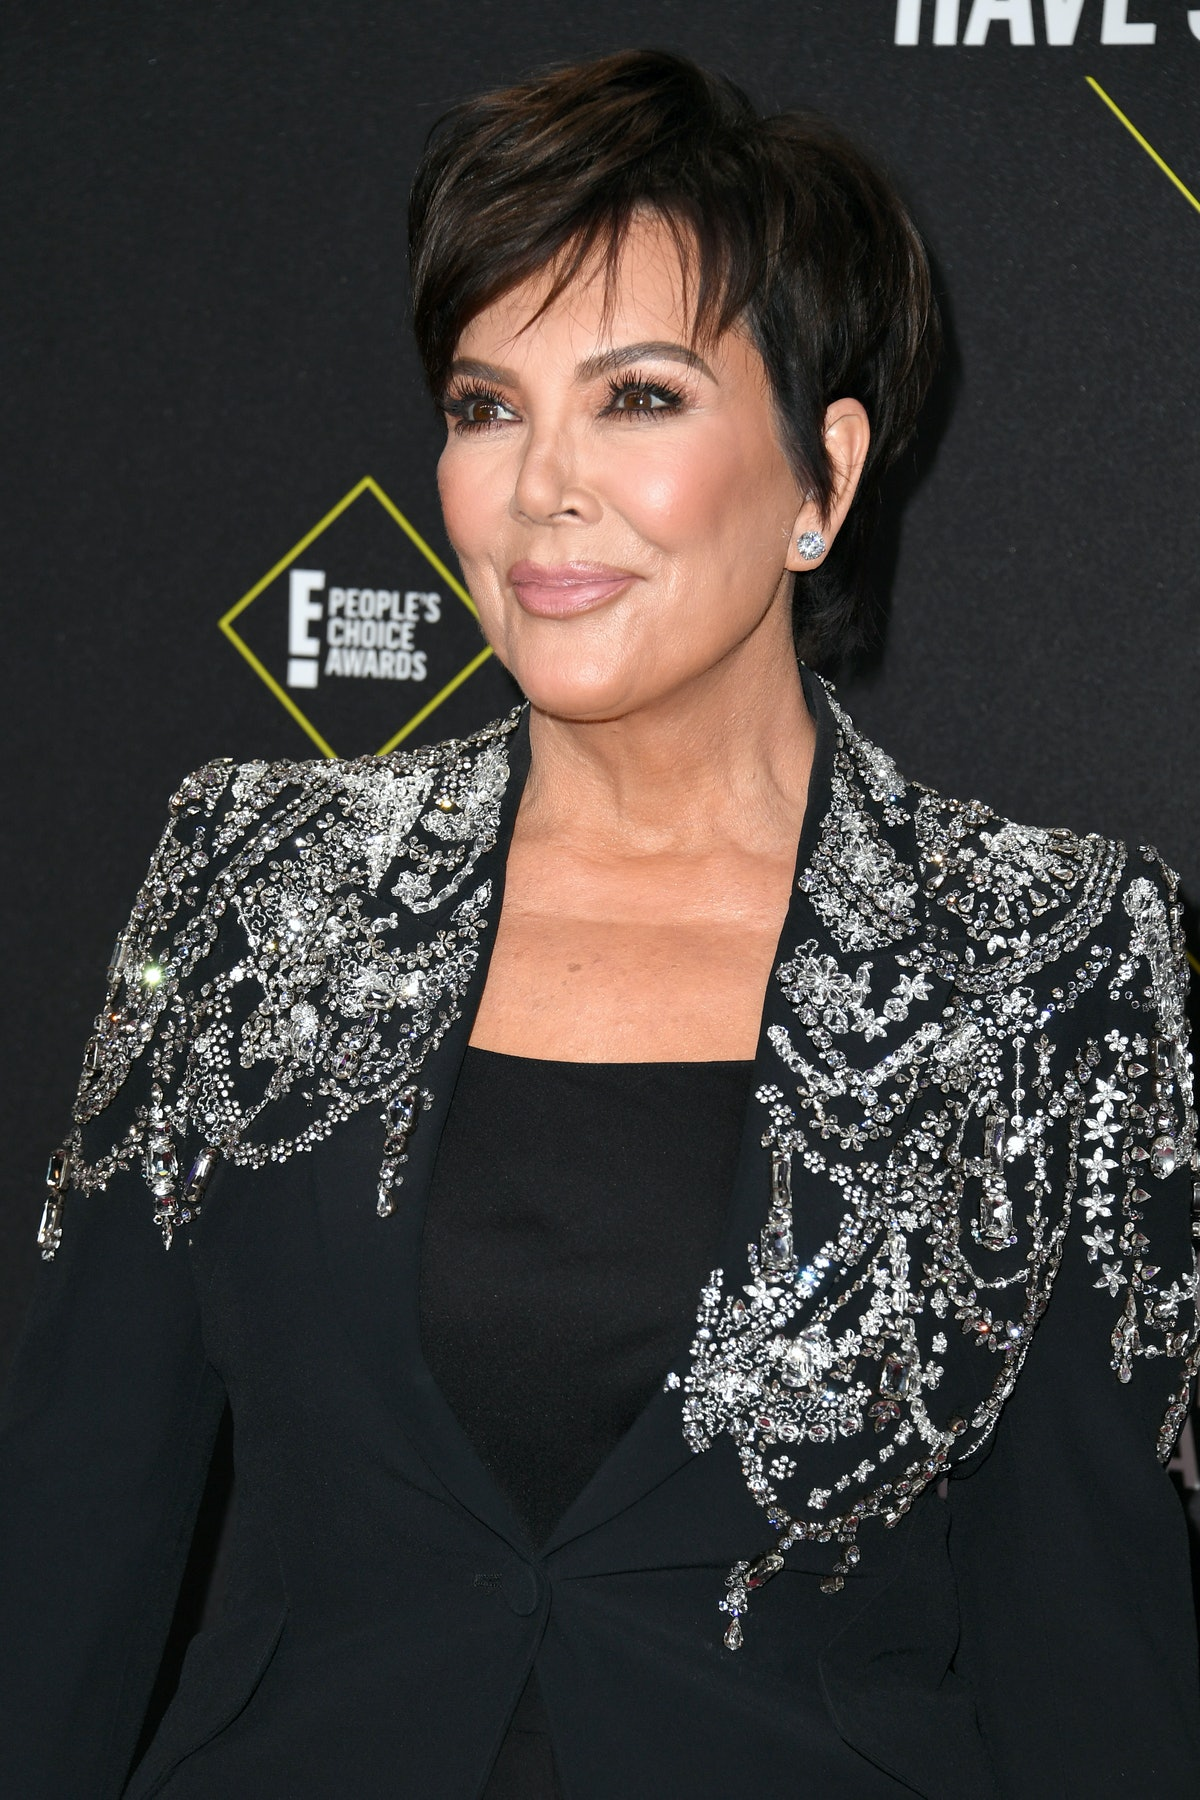 Kris Jenner attends the People's Choice Awards.